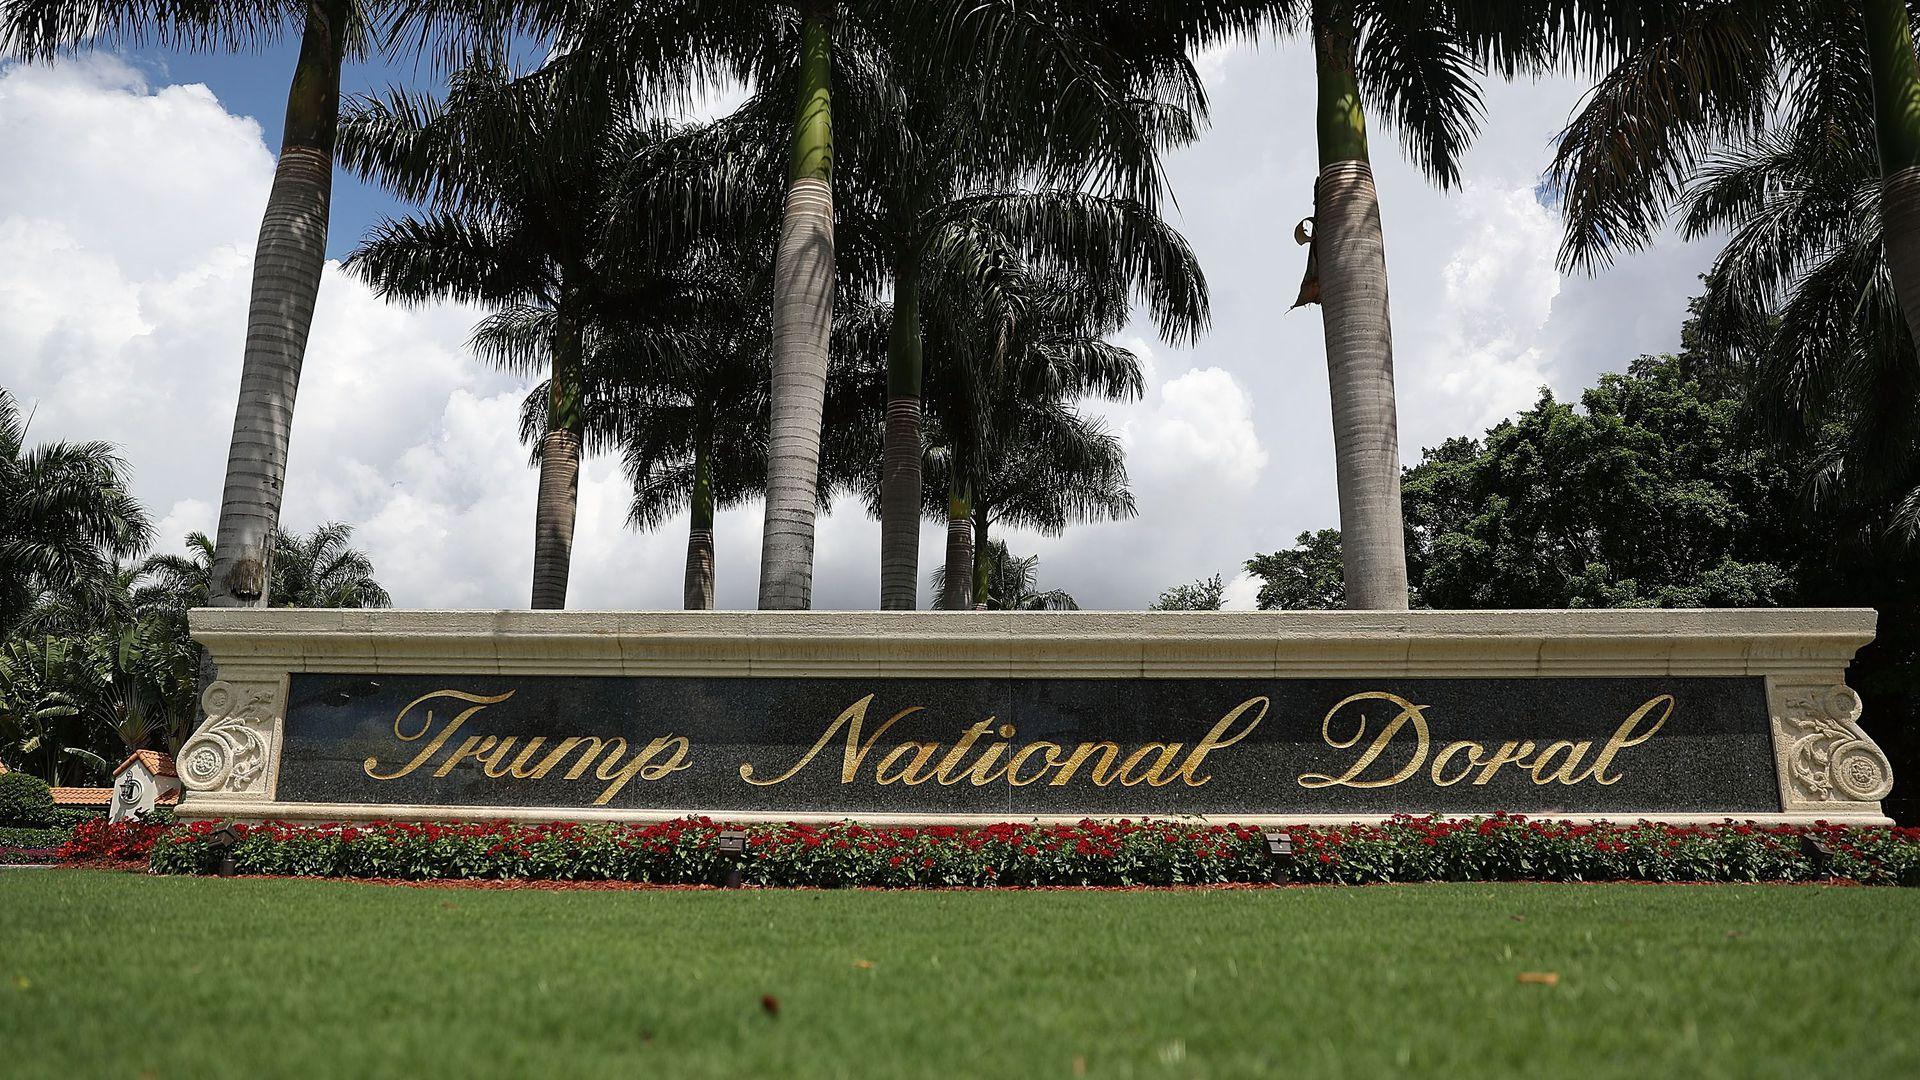 Trump National Doral is in the mix to host the G7 in 2020